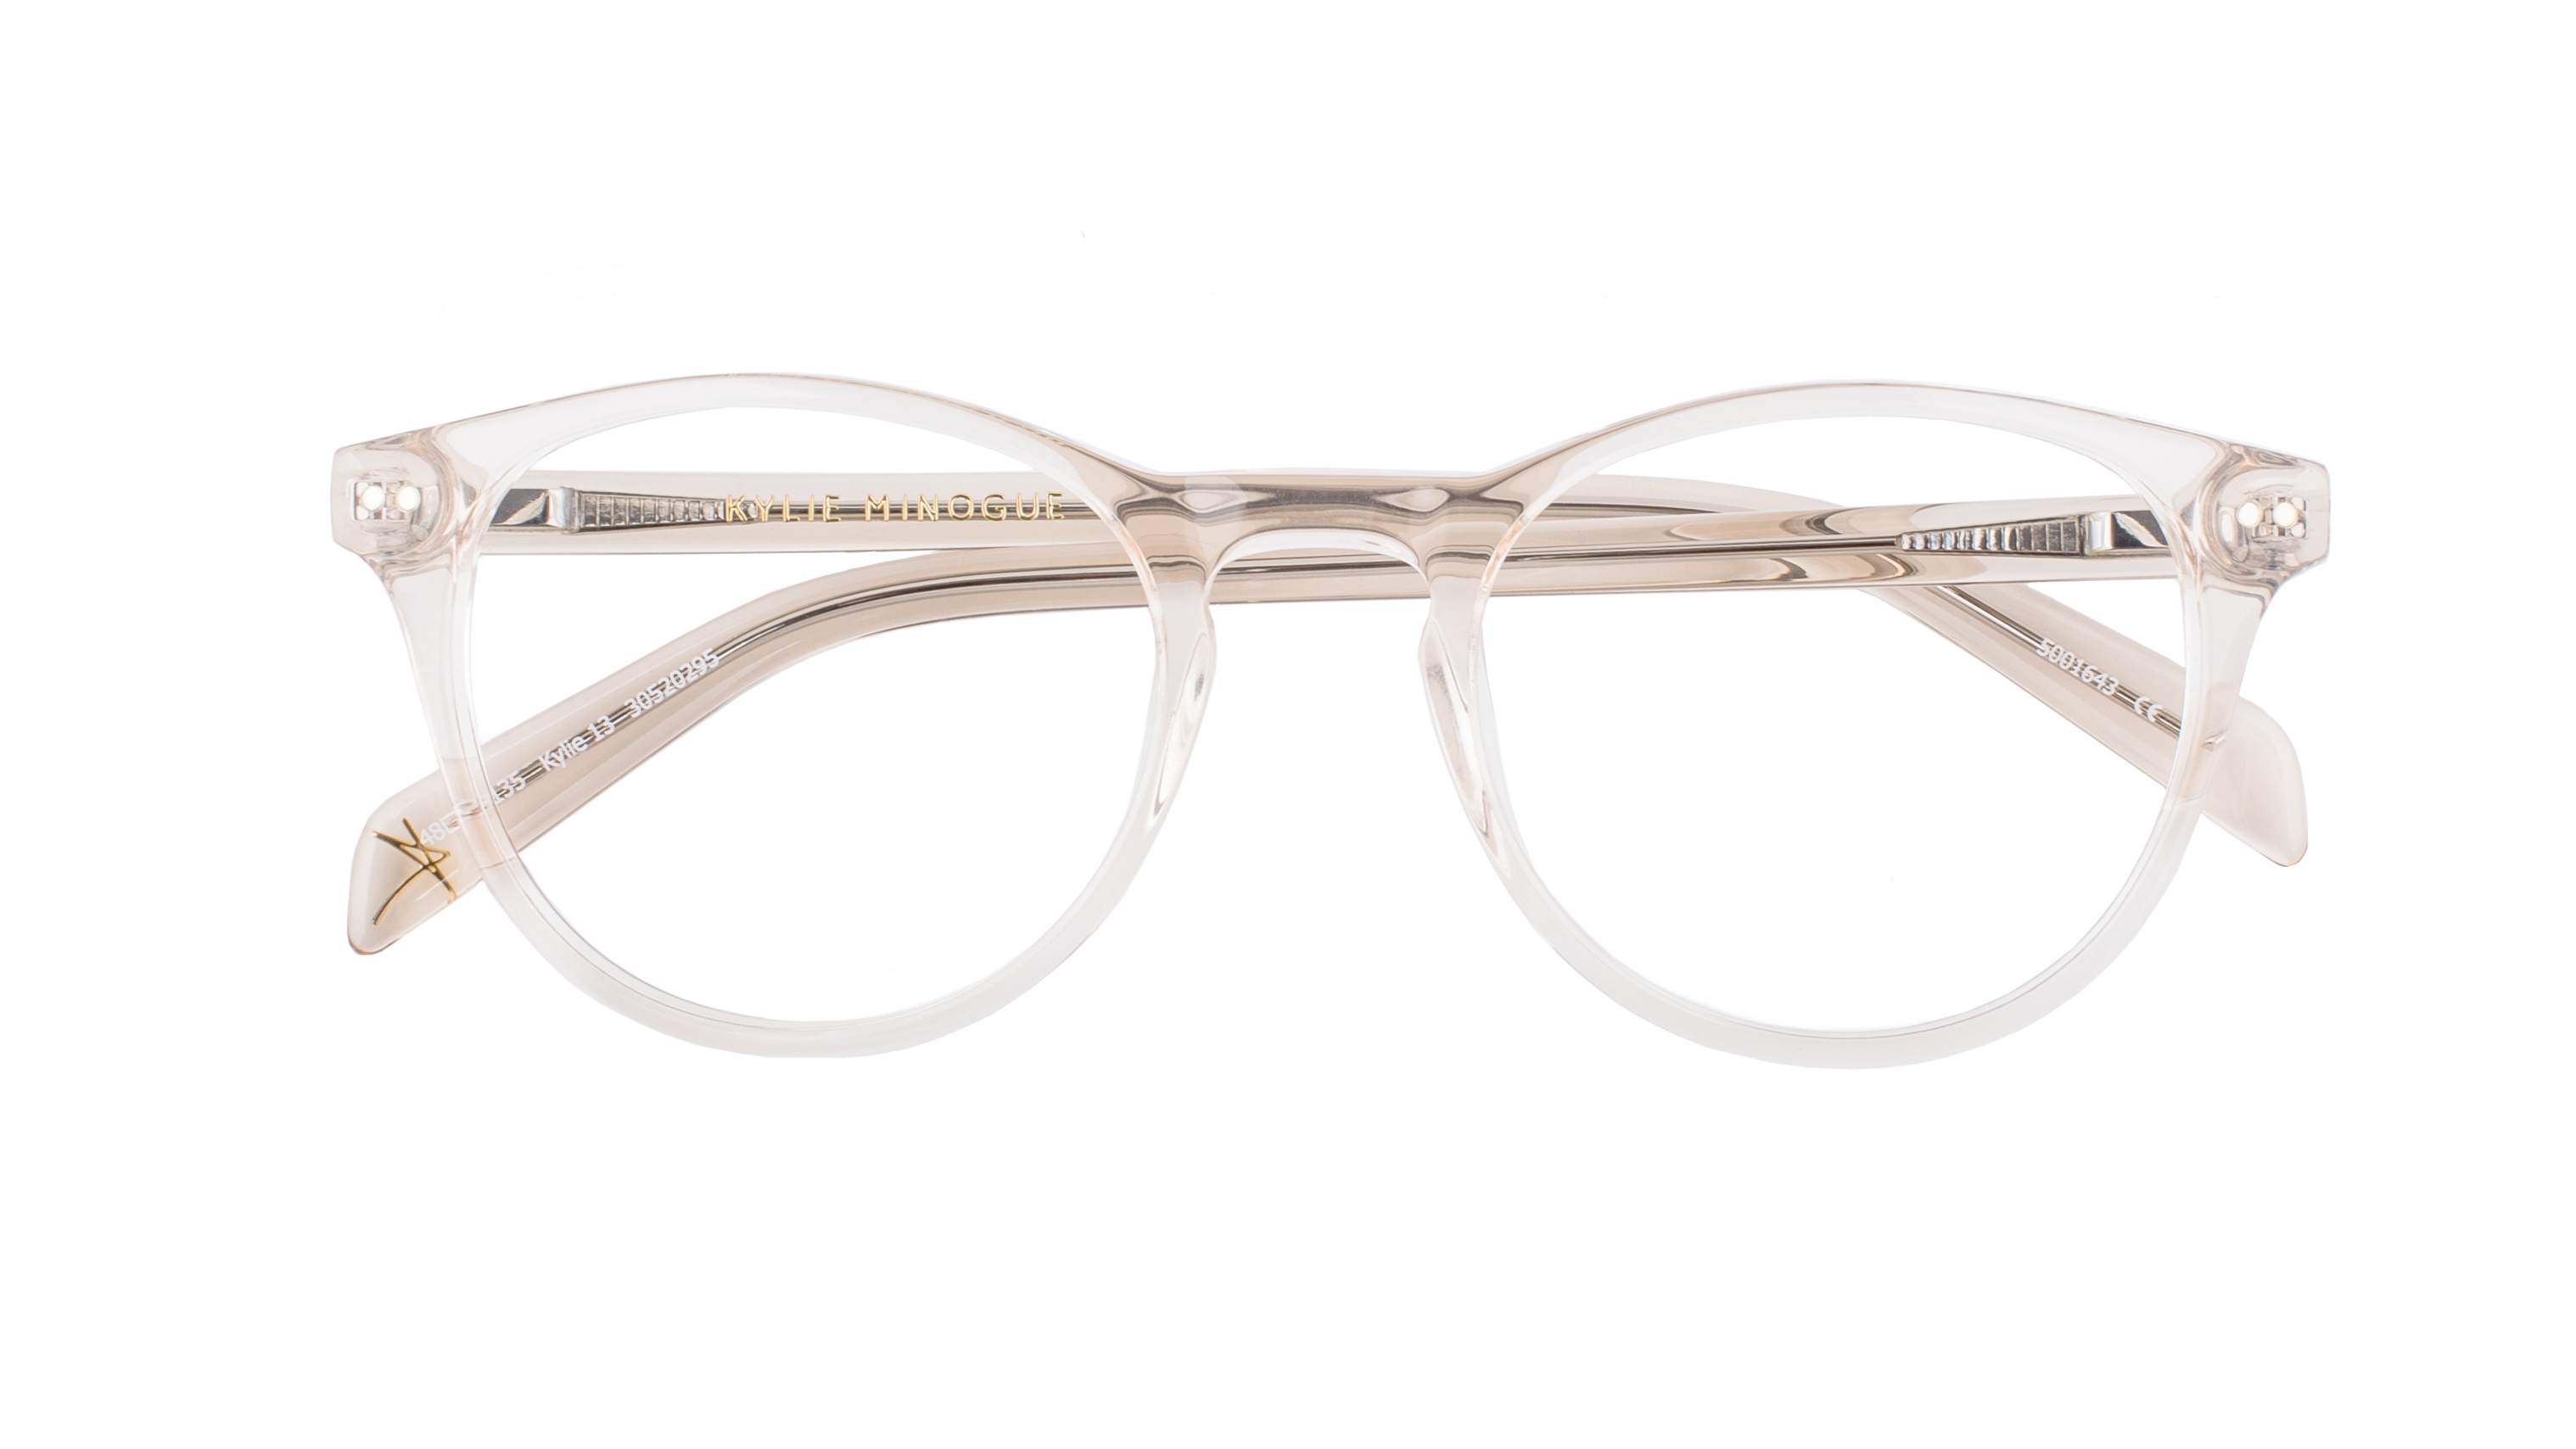 Kylie Minogue Eyewear_Kylie 13_SKU 30520295_RRP 2 pairs from $299